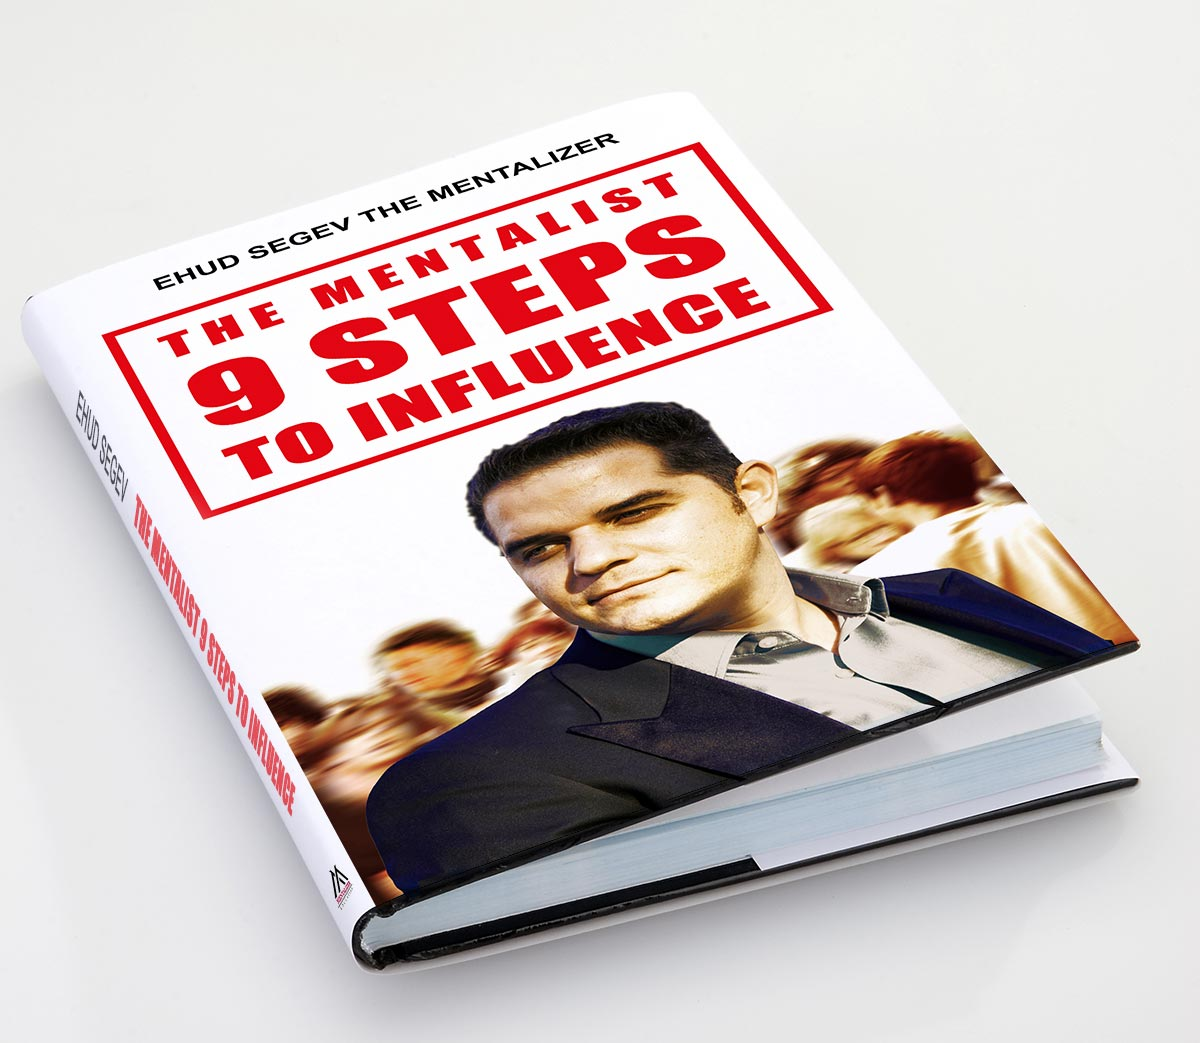 The Mentalist 9 Steps to Influence